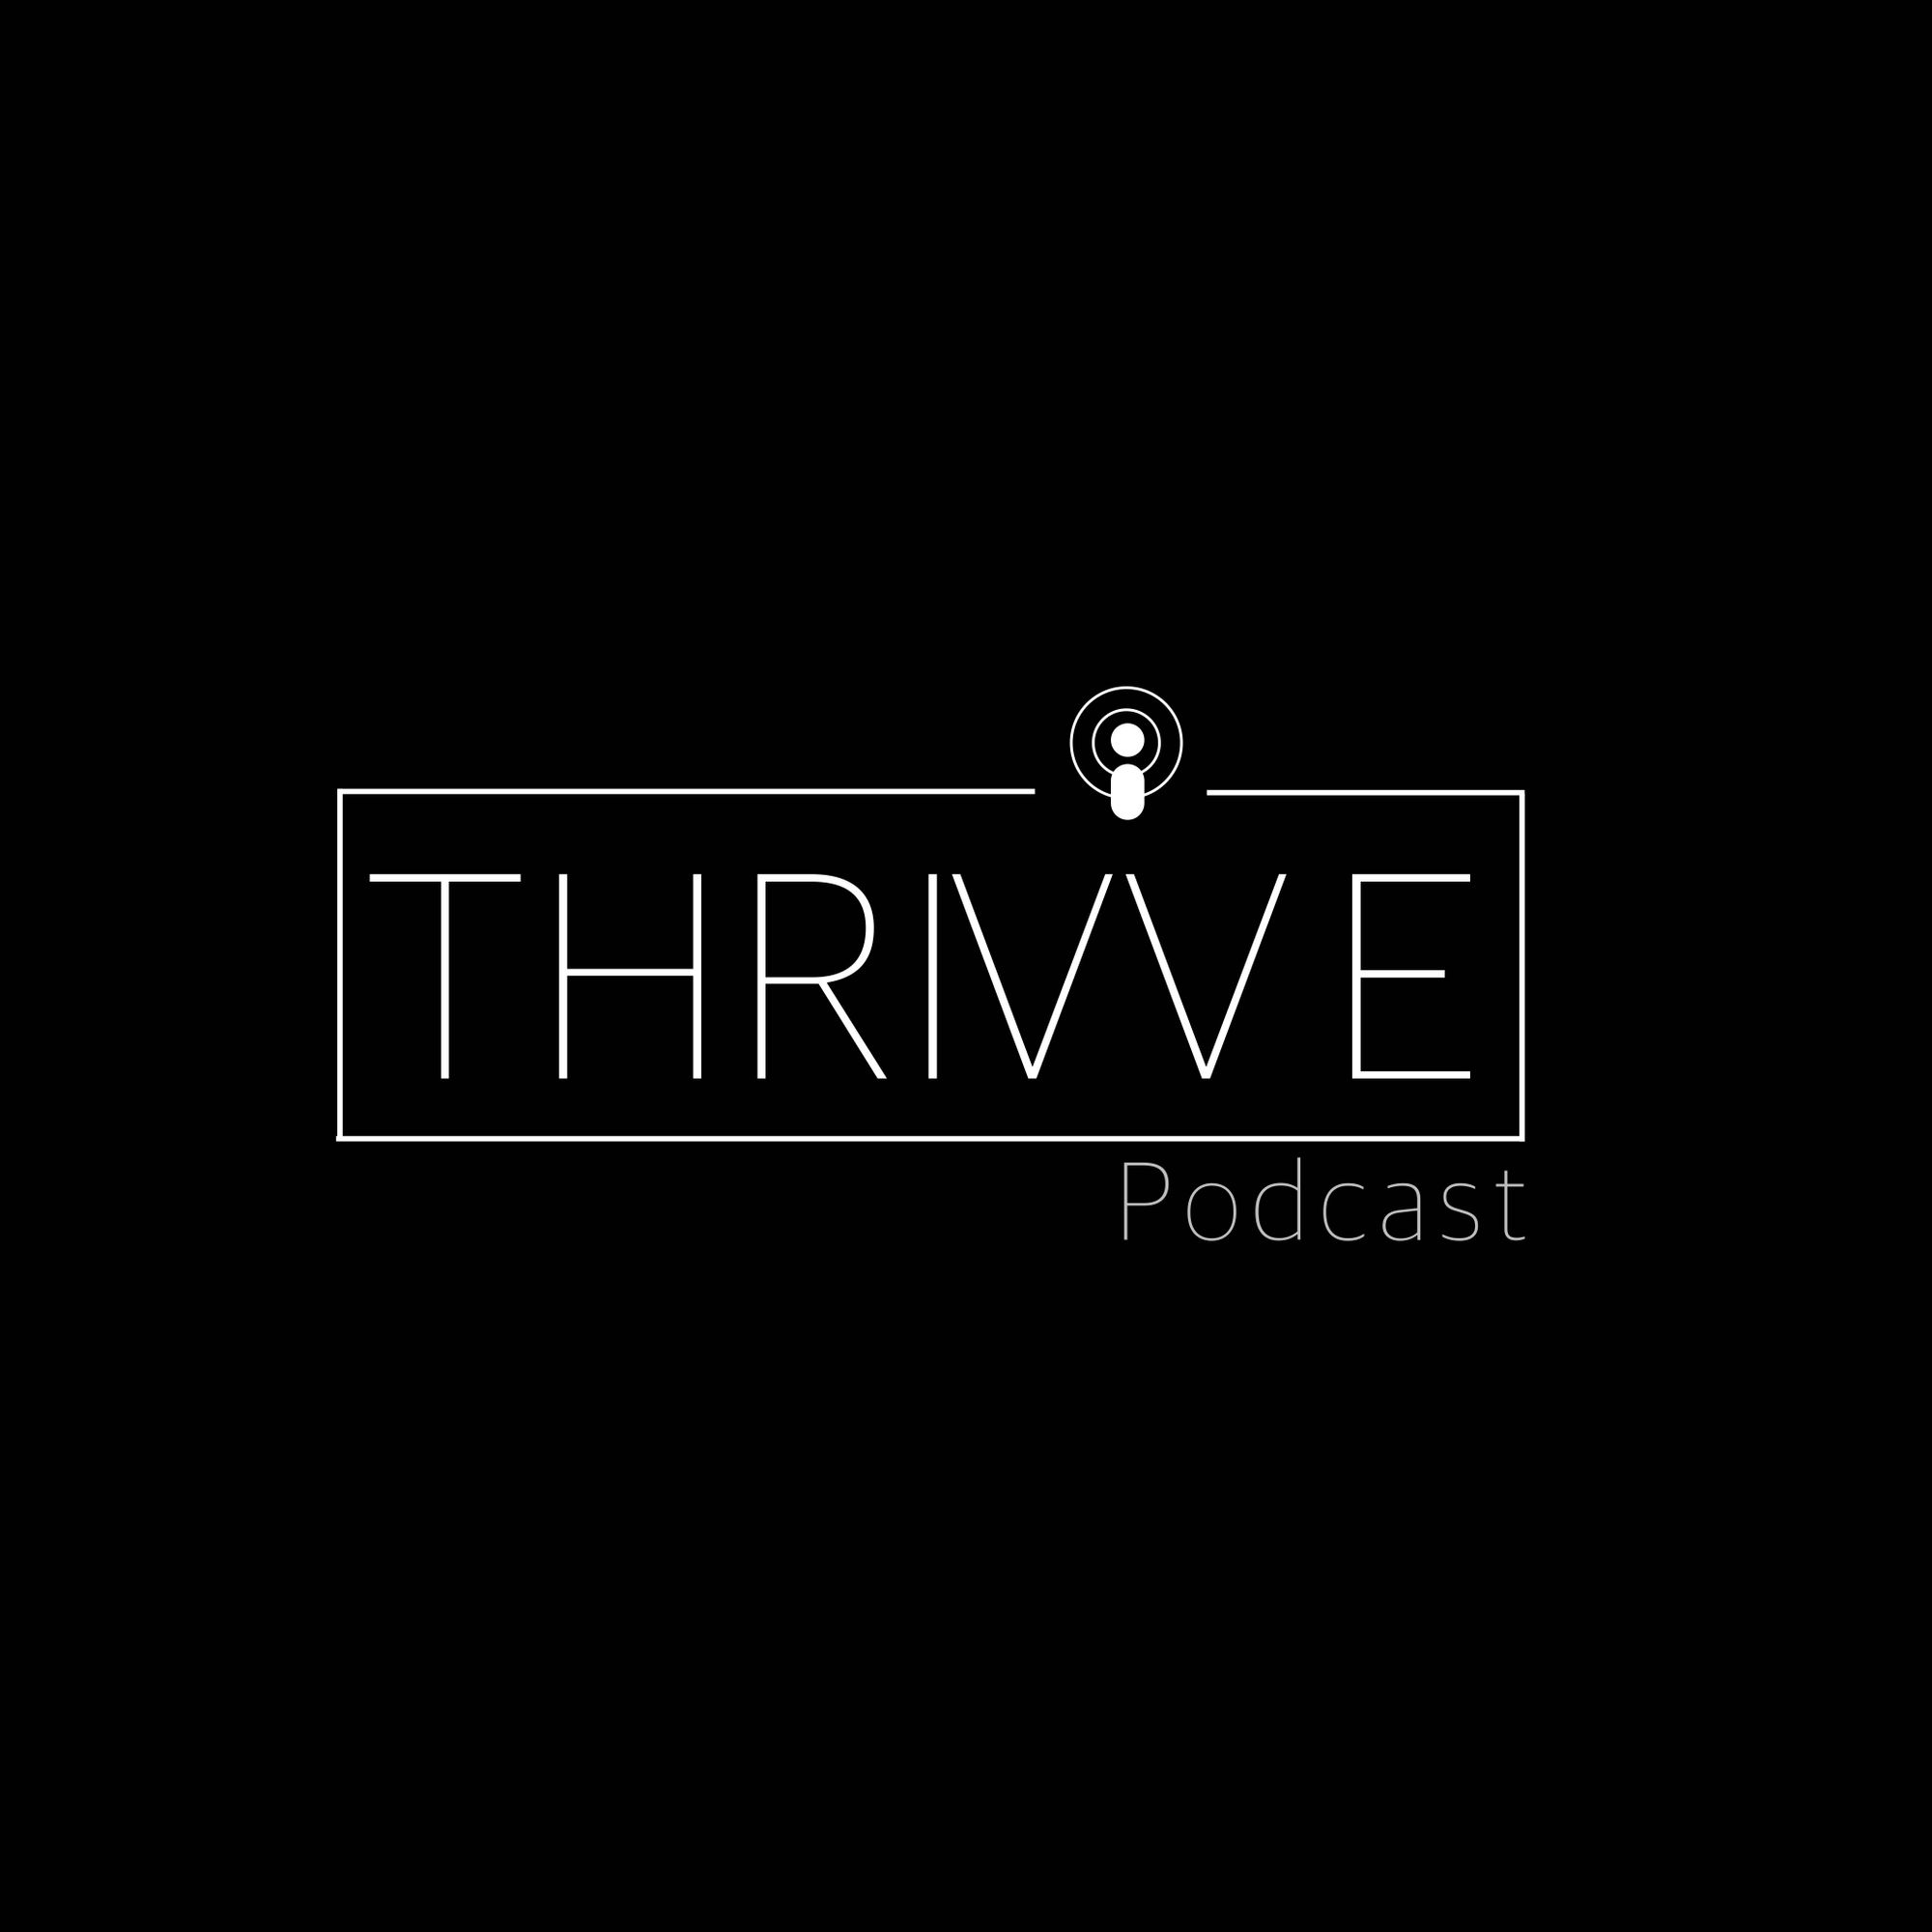 Introducing the Thrivve Podcast